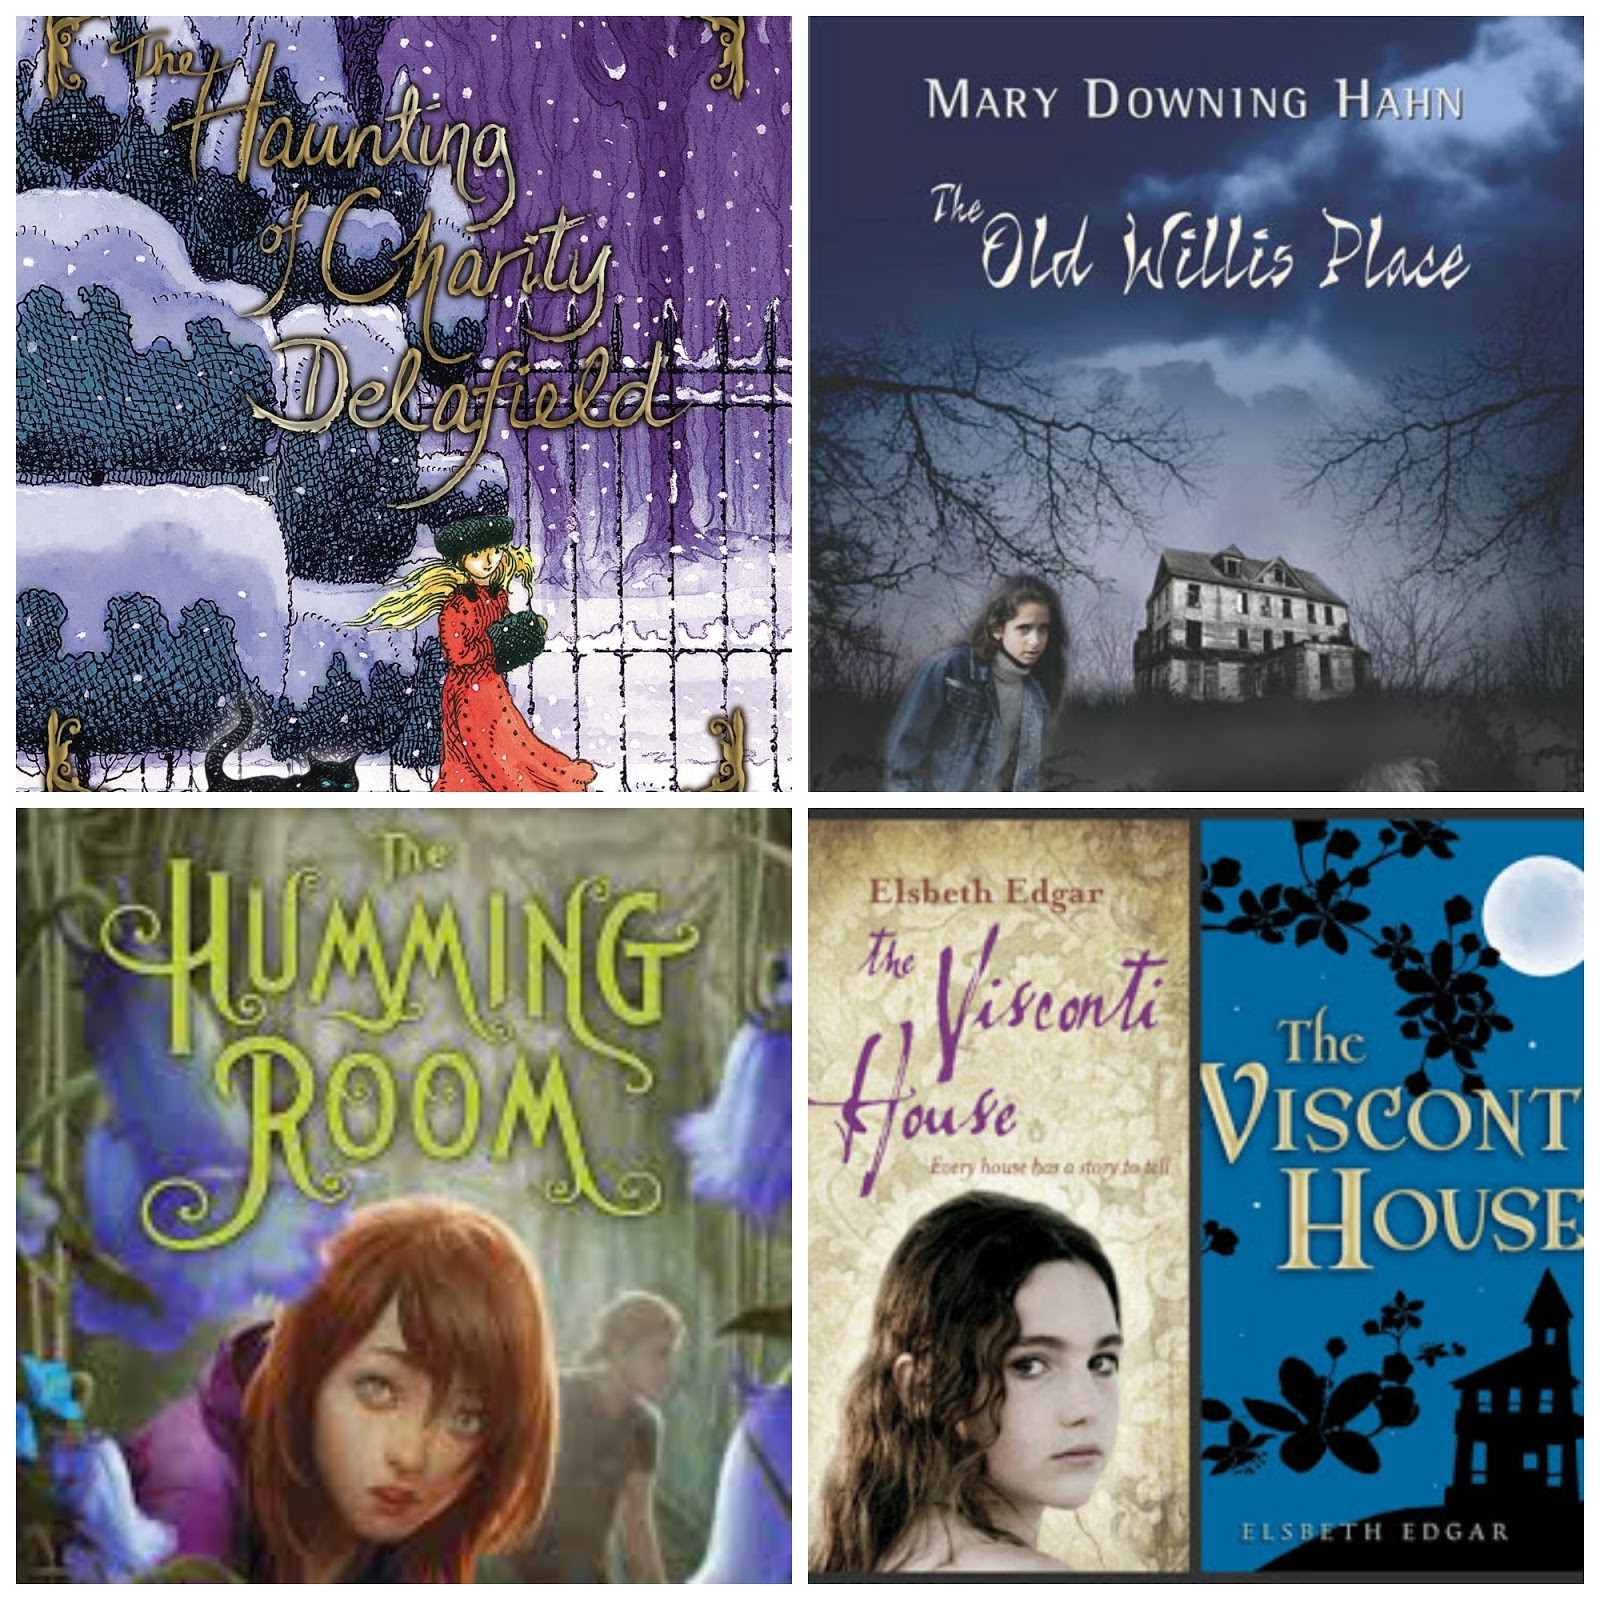 You Might Also Enjoy The Old Willis Place, The Visconti House, The Haunting  Of Charity Delafield And The Humming Room